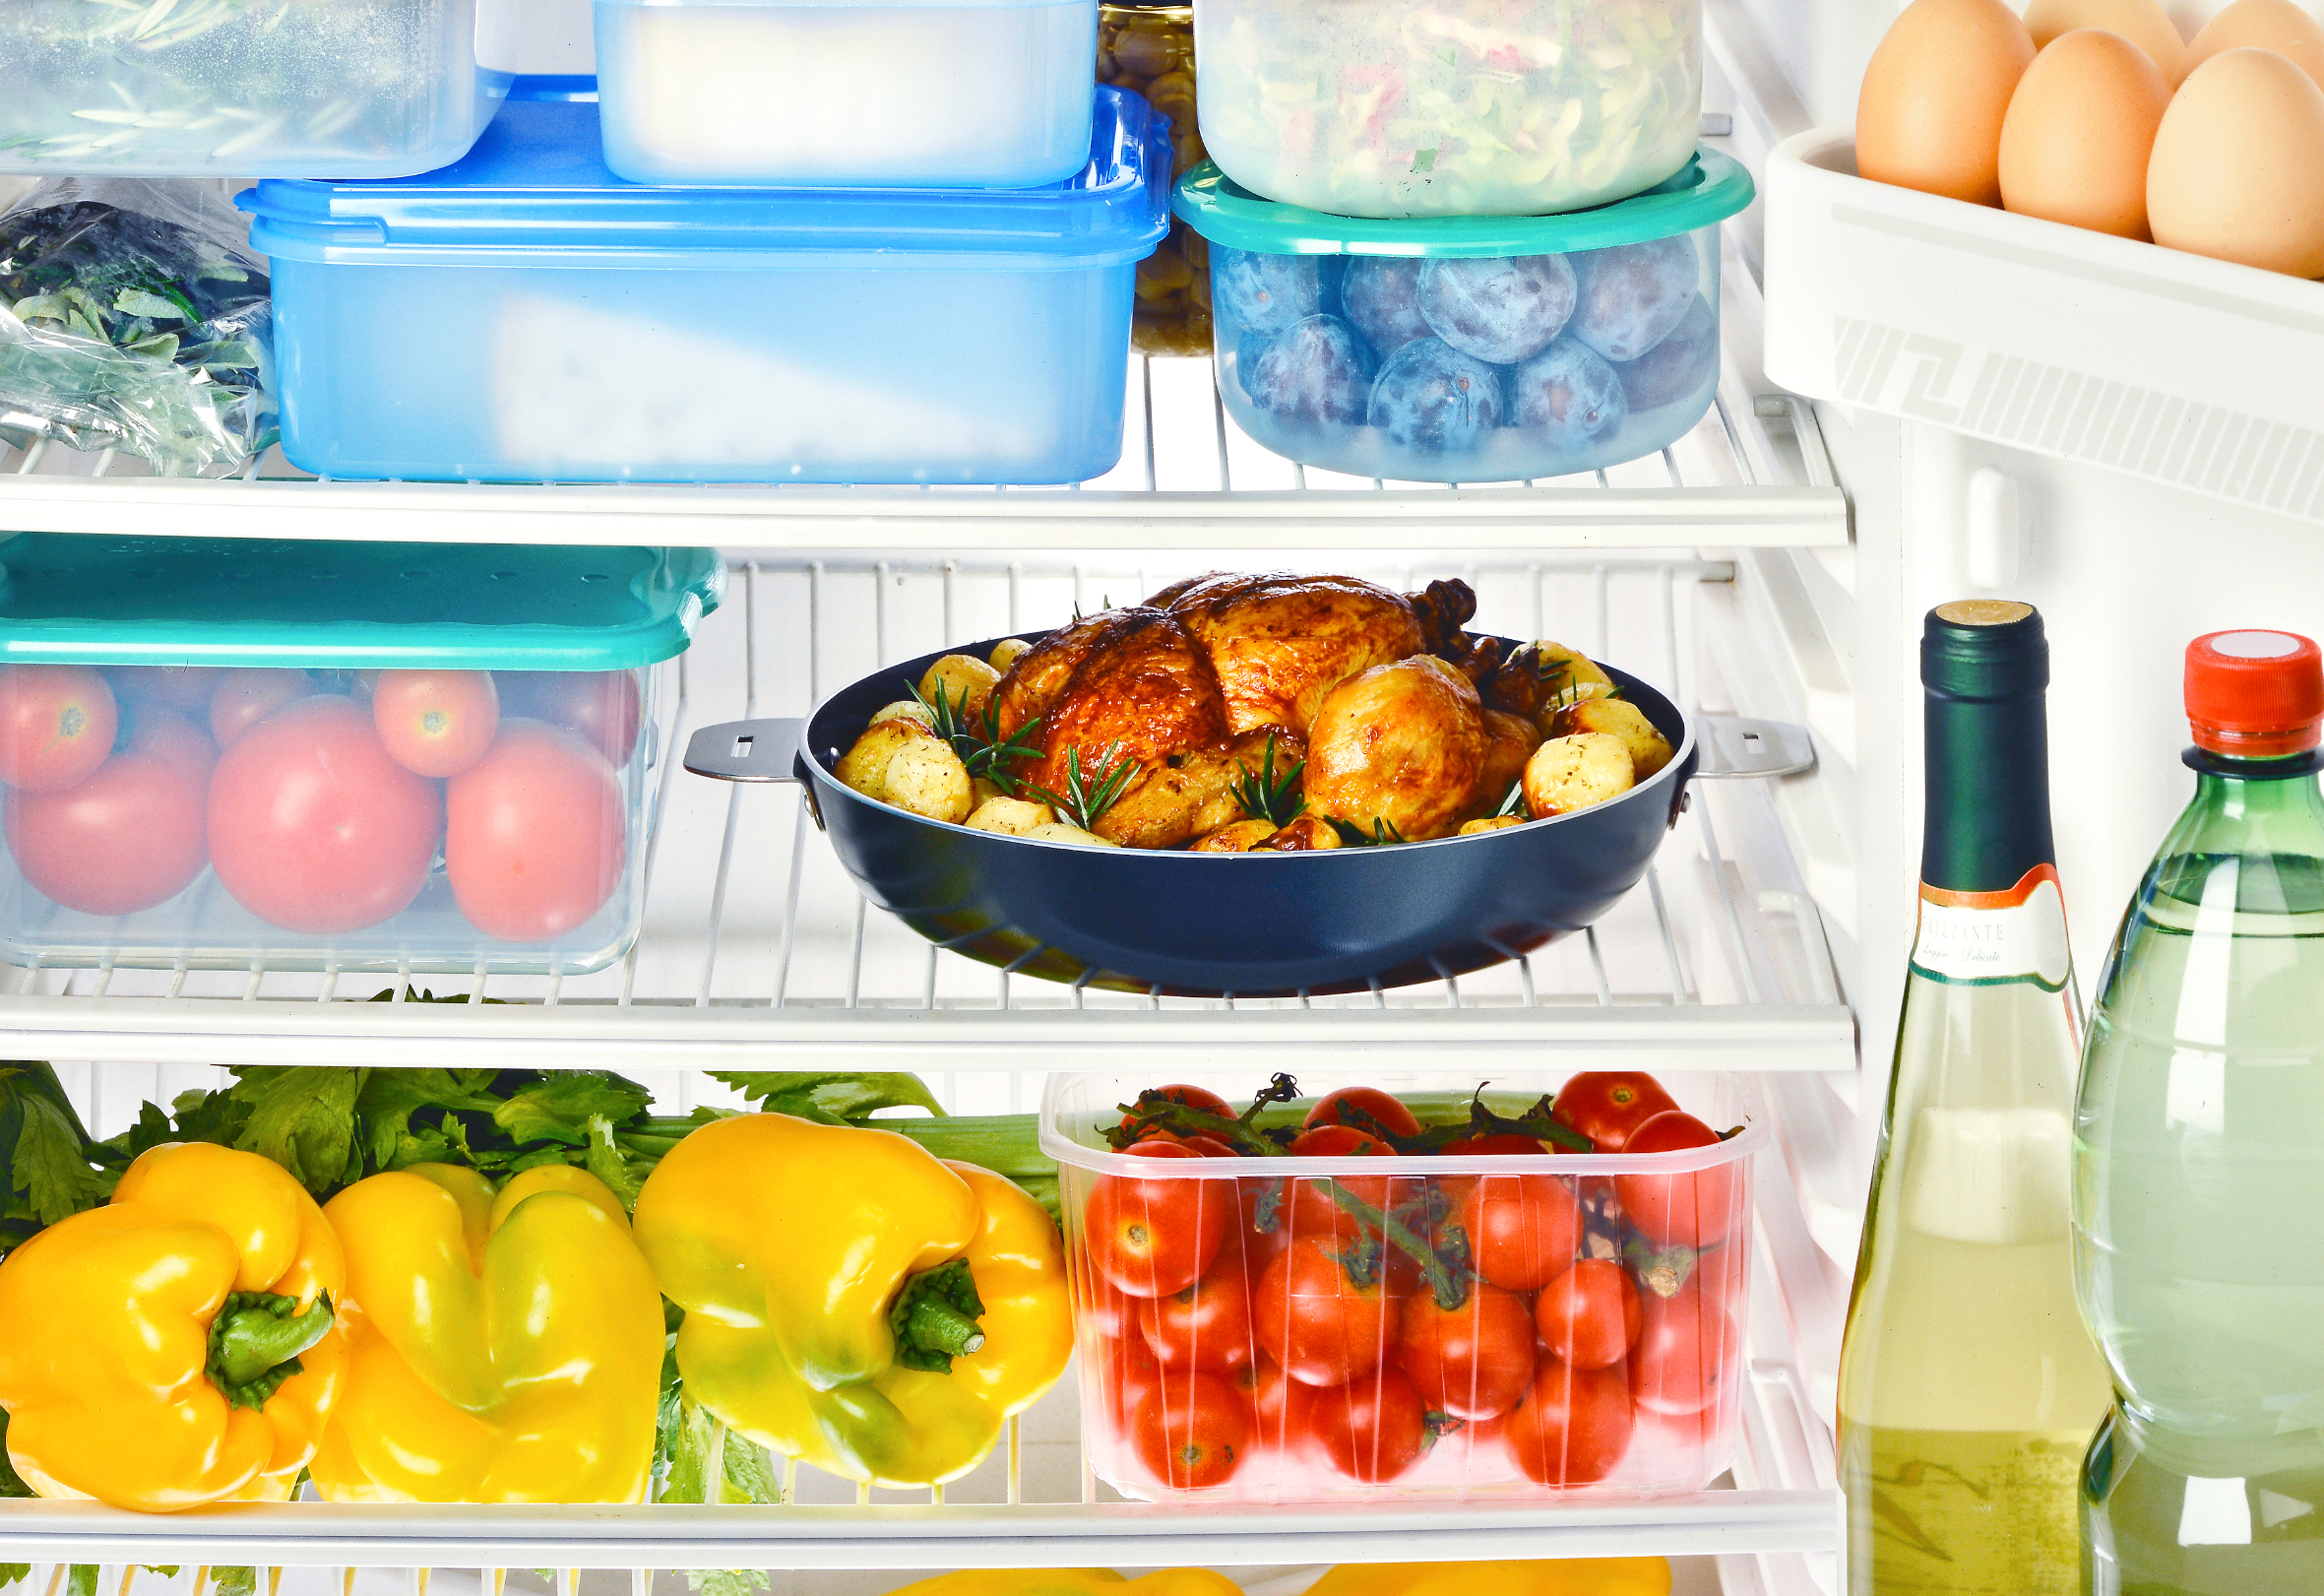 Storing Food In Pots And Pans In Refrigerator